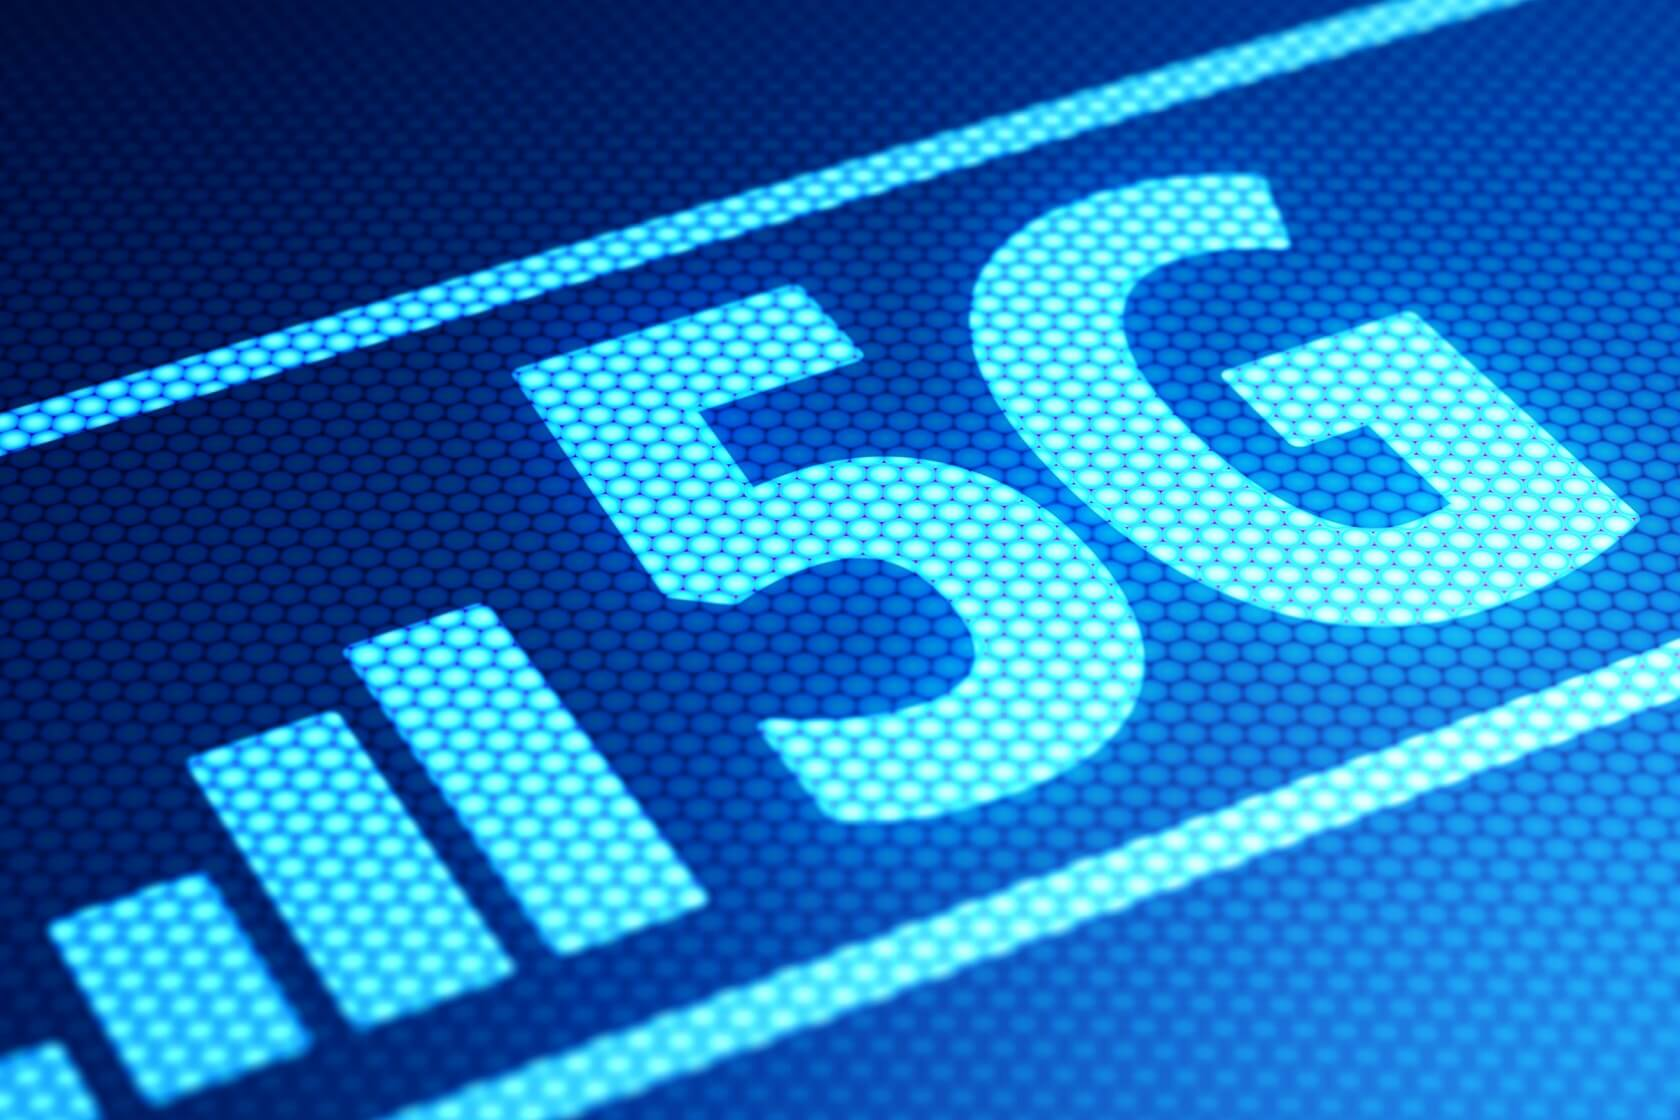 Opinion: AT&T expo highlights 5G promise and perils